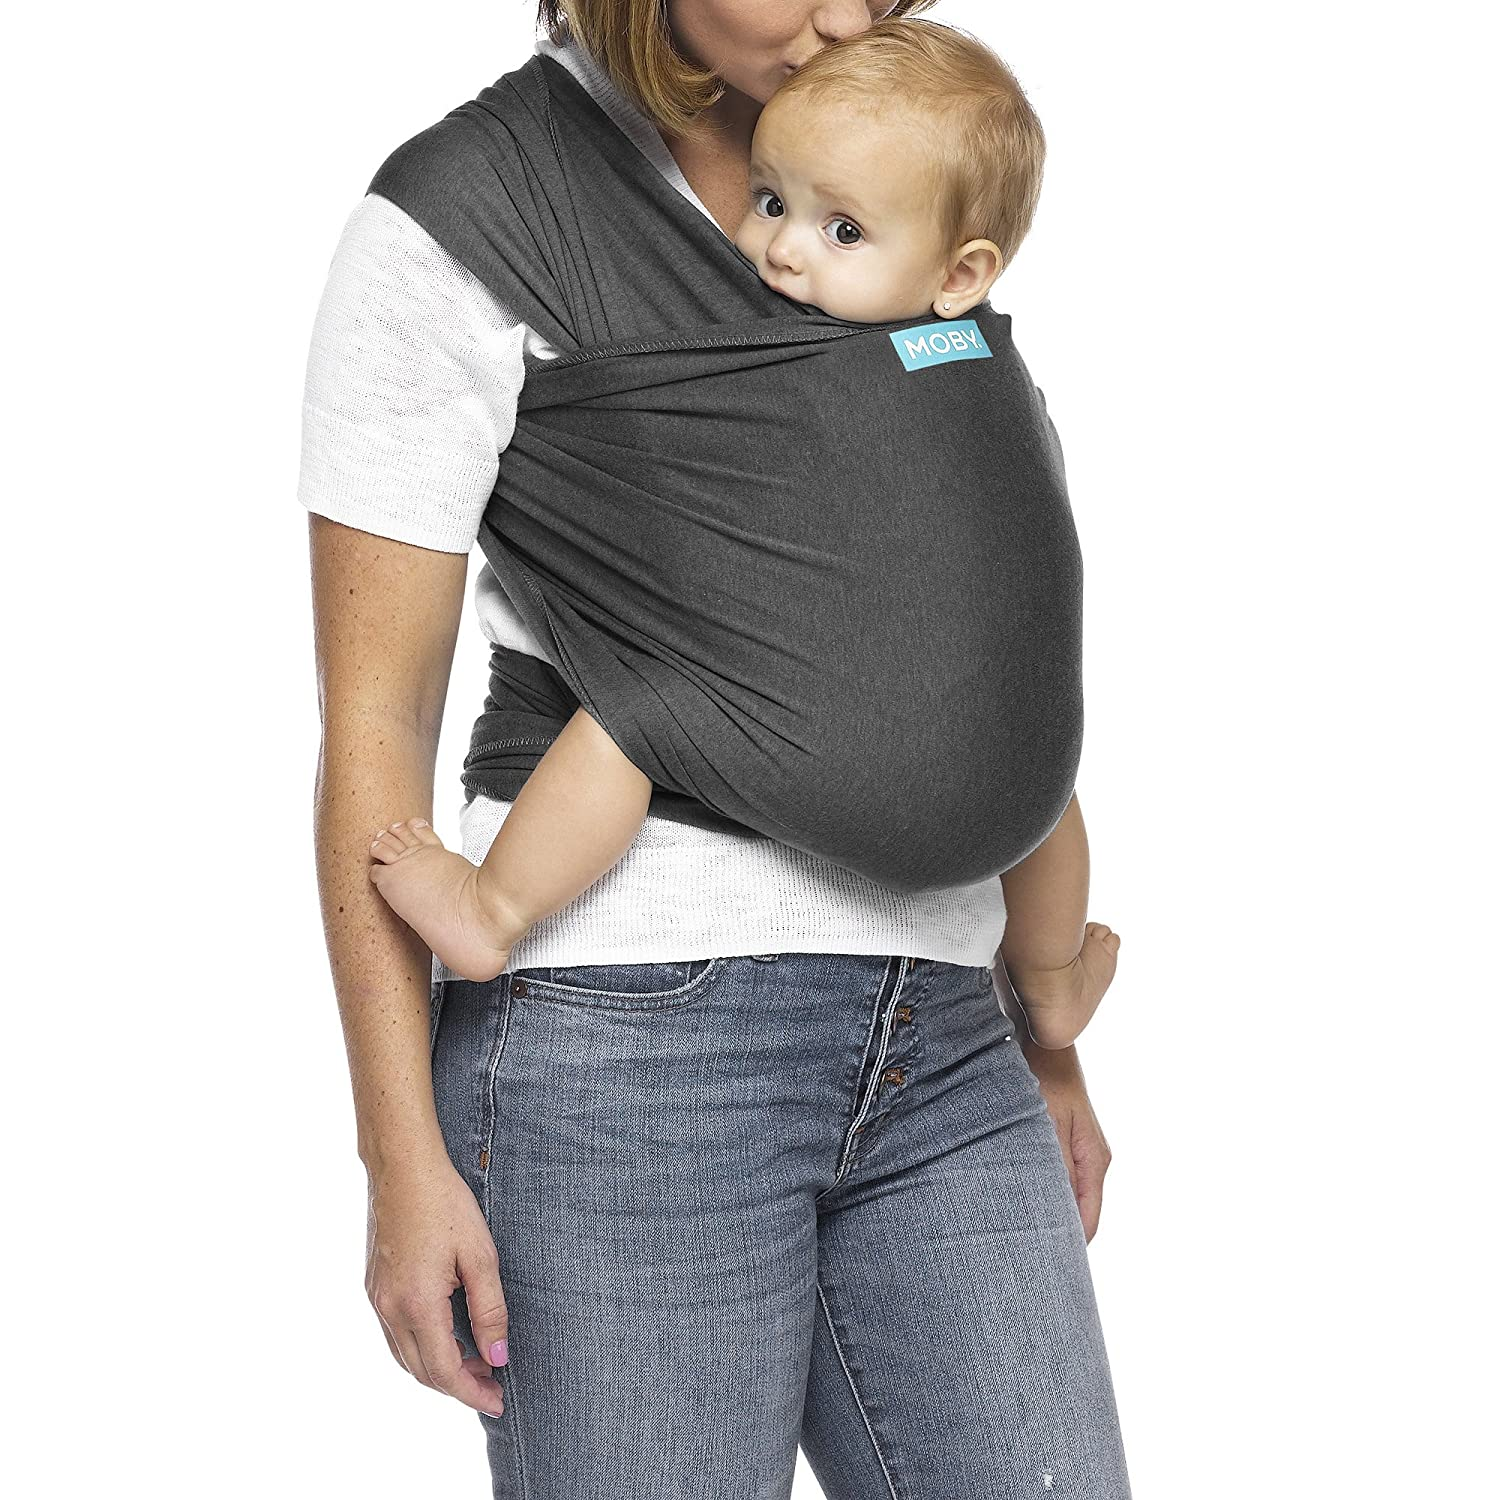 f298ed942a6 Amazon.com   Moby Evolution Baby Wrap Carrier (Charcoal) - Toddler ...